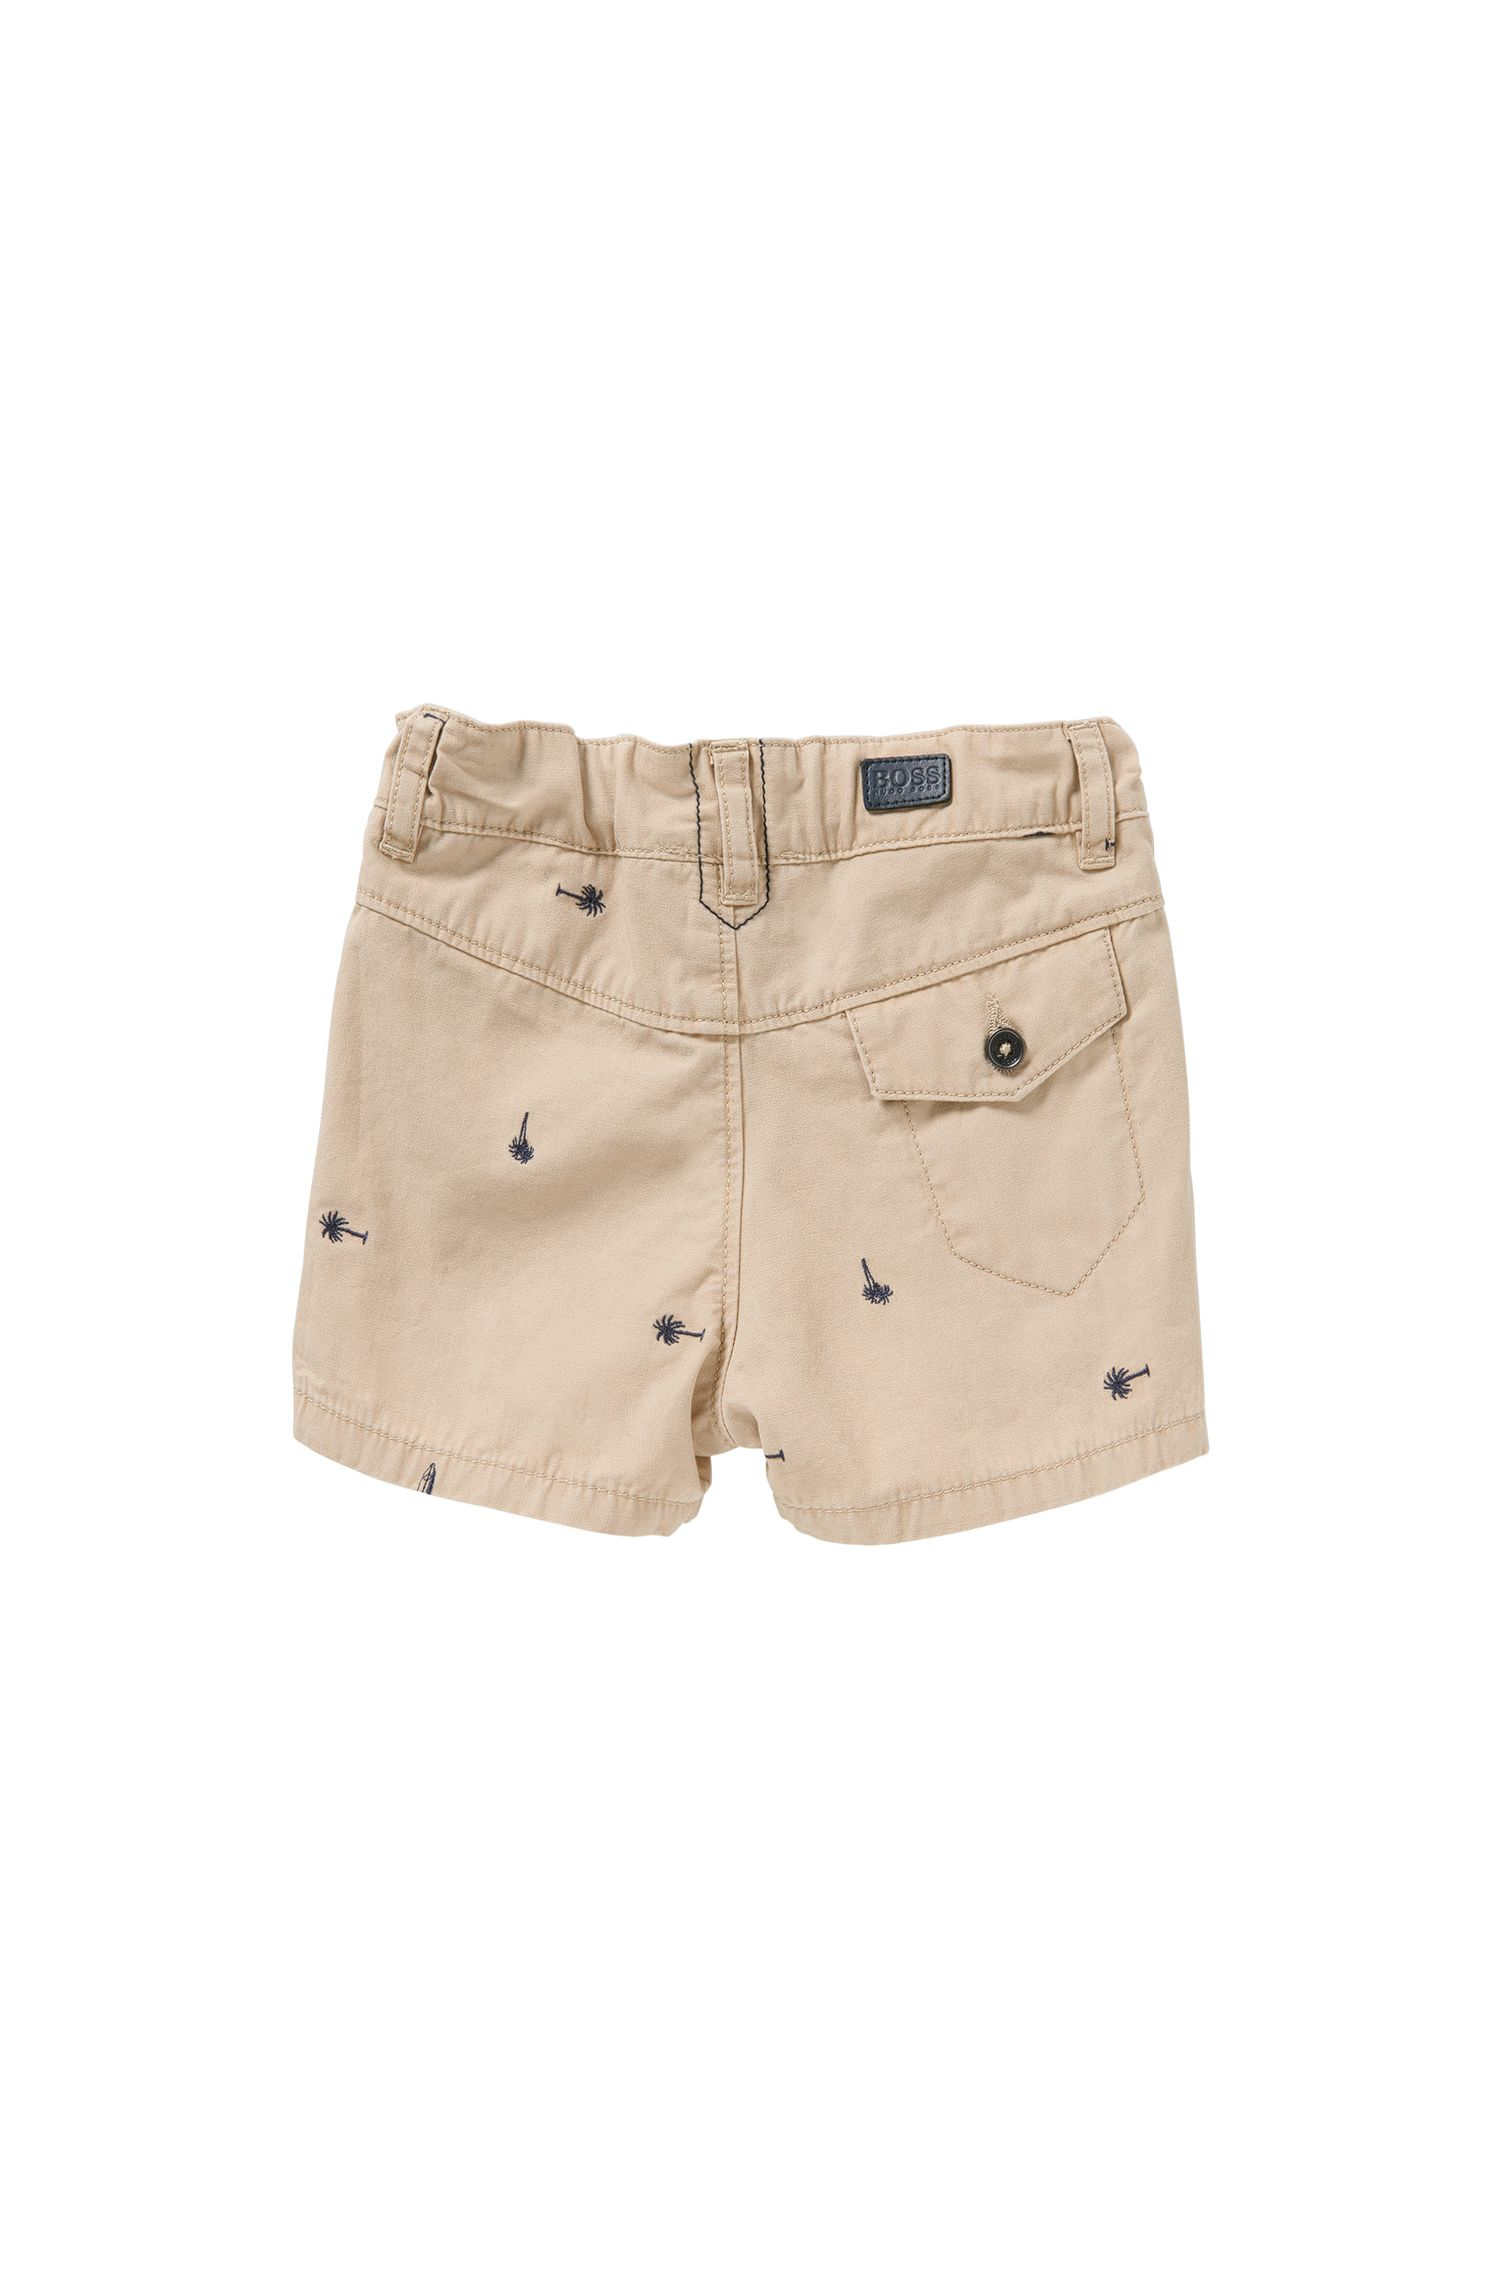 Newborns' shorts in cotton with embroidery: 'J04219'